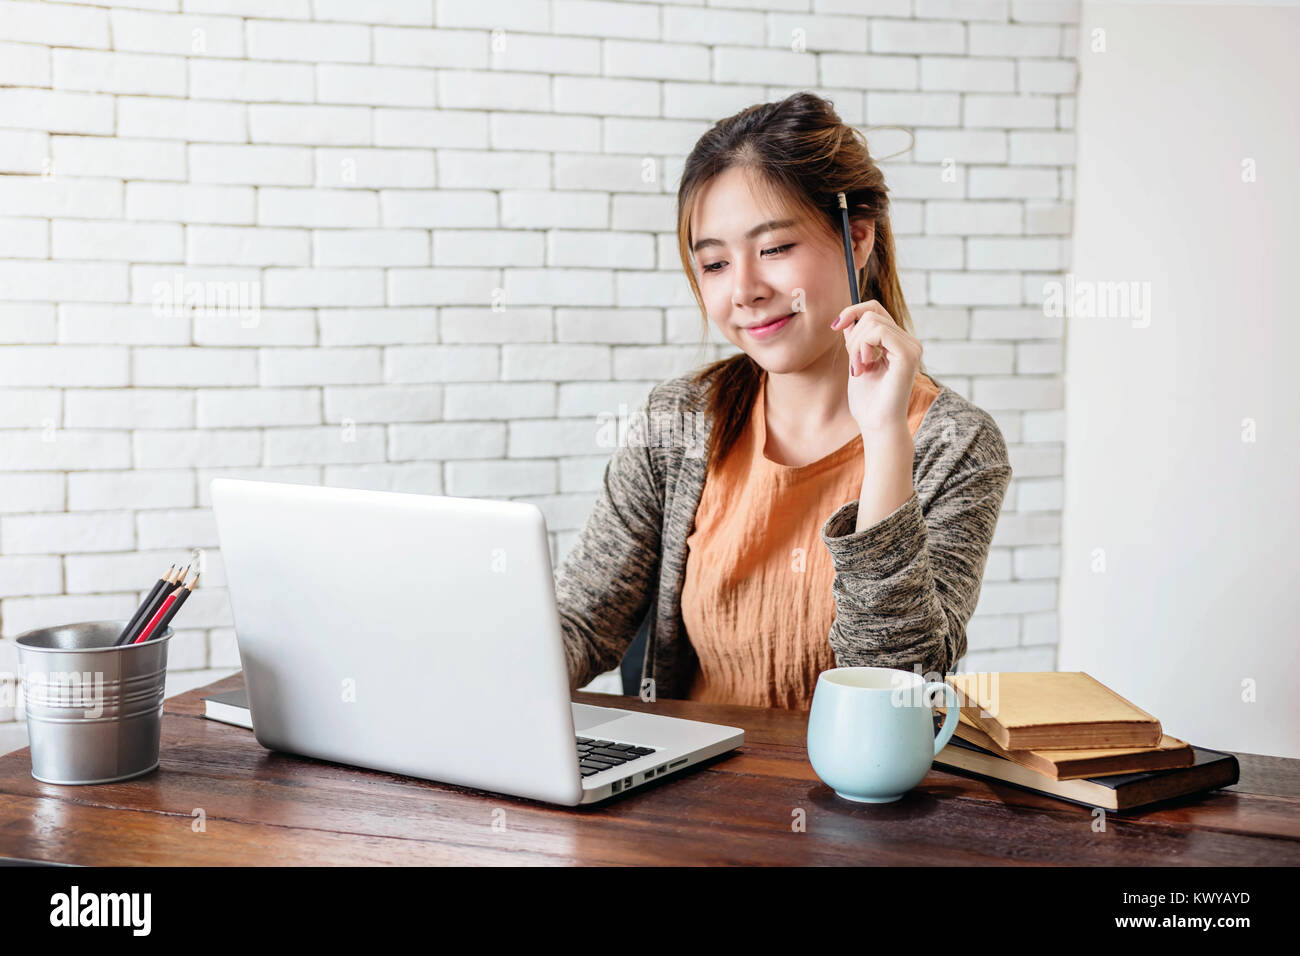 https://c8.alamy.com/comp/KWYAYD/young-woman-working-on-laptop-at-home-office-work-with-happy-smiley-KWYAYD.jpg